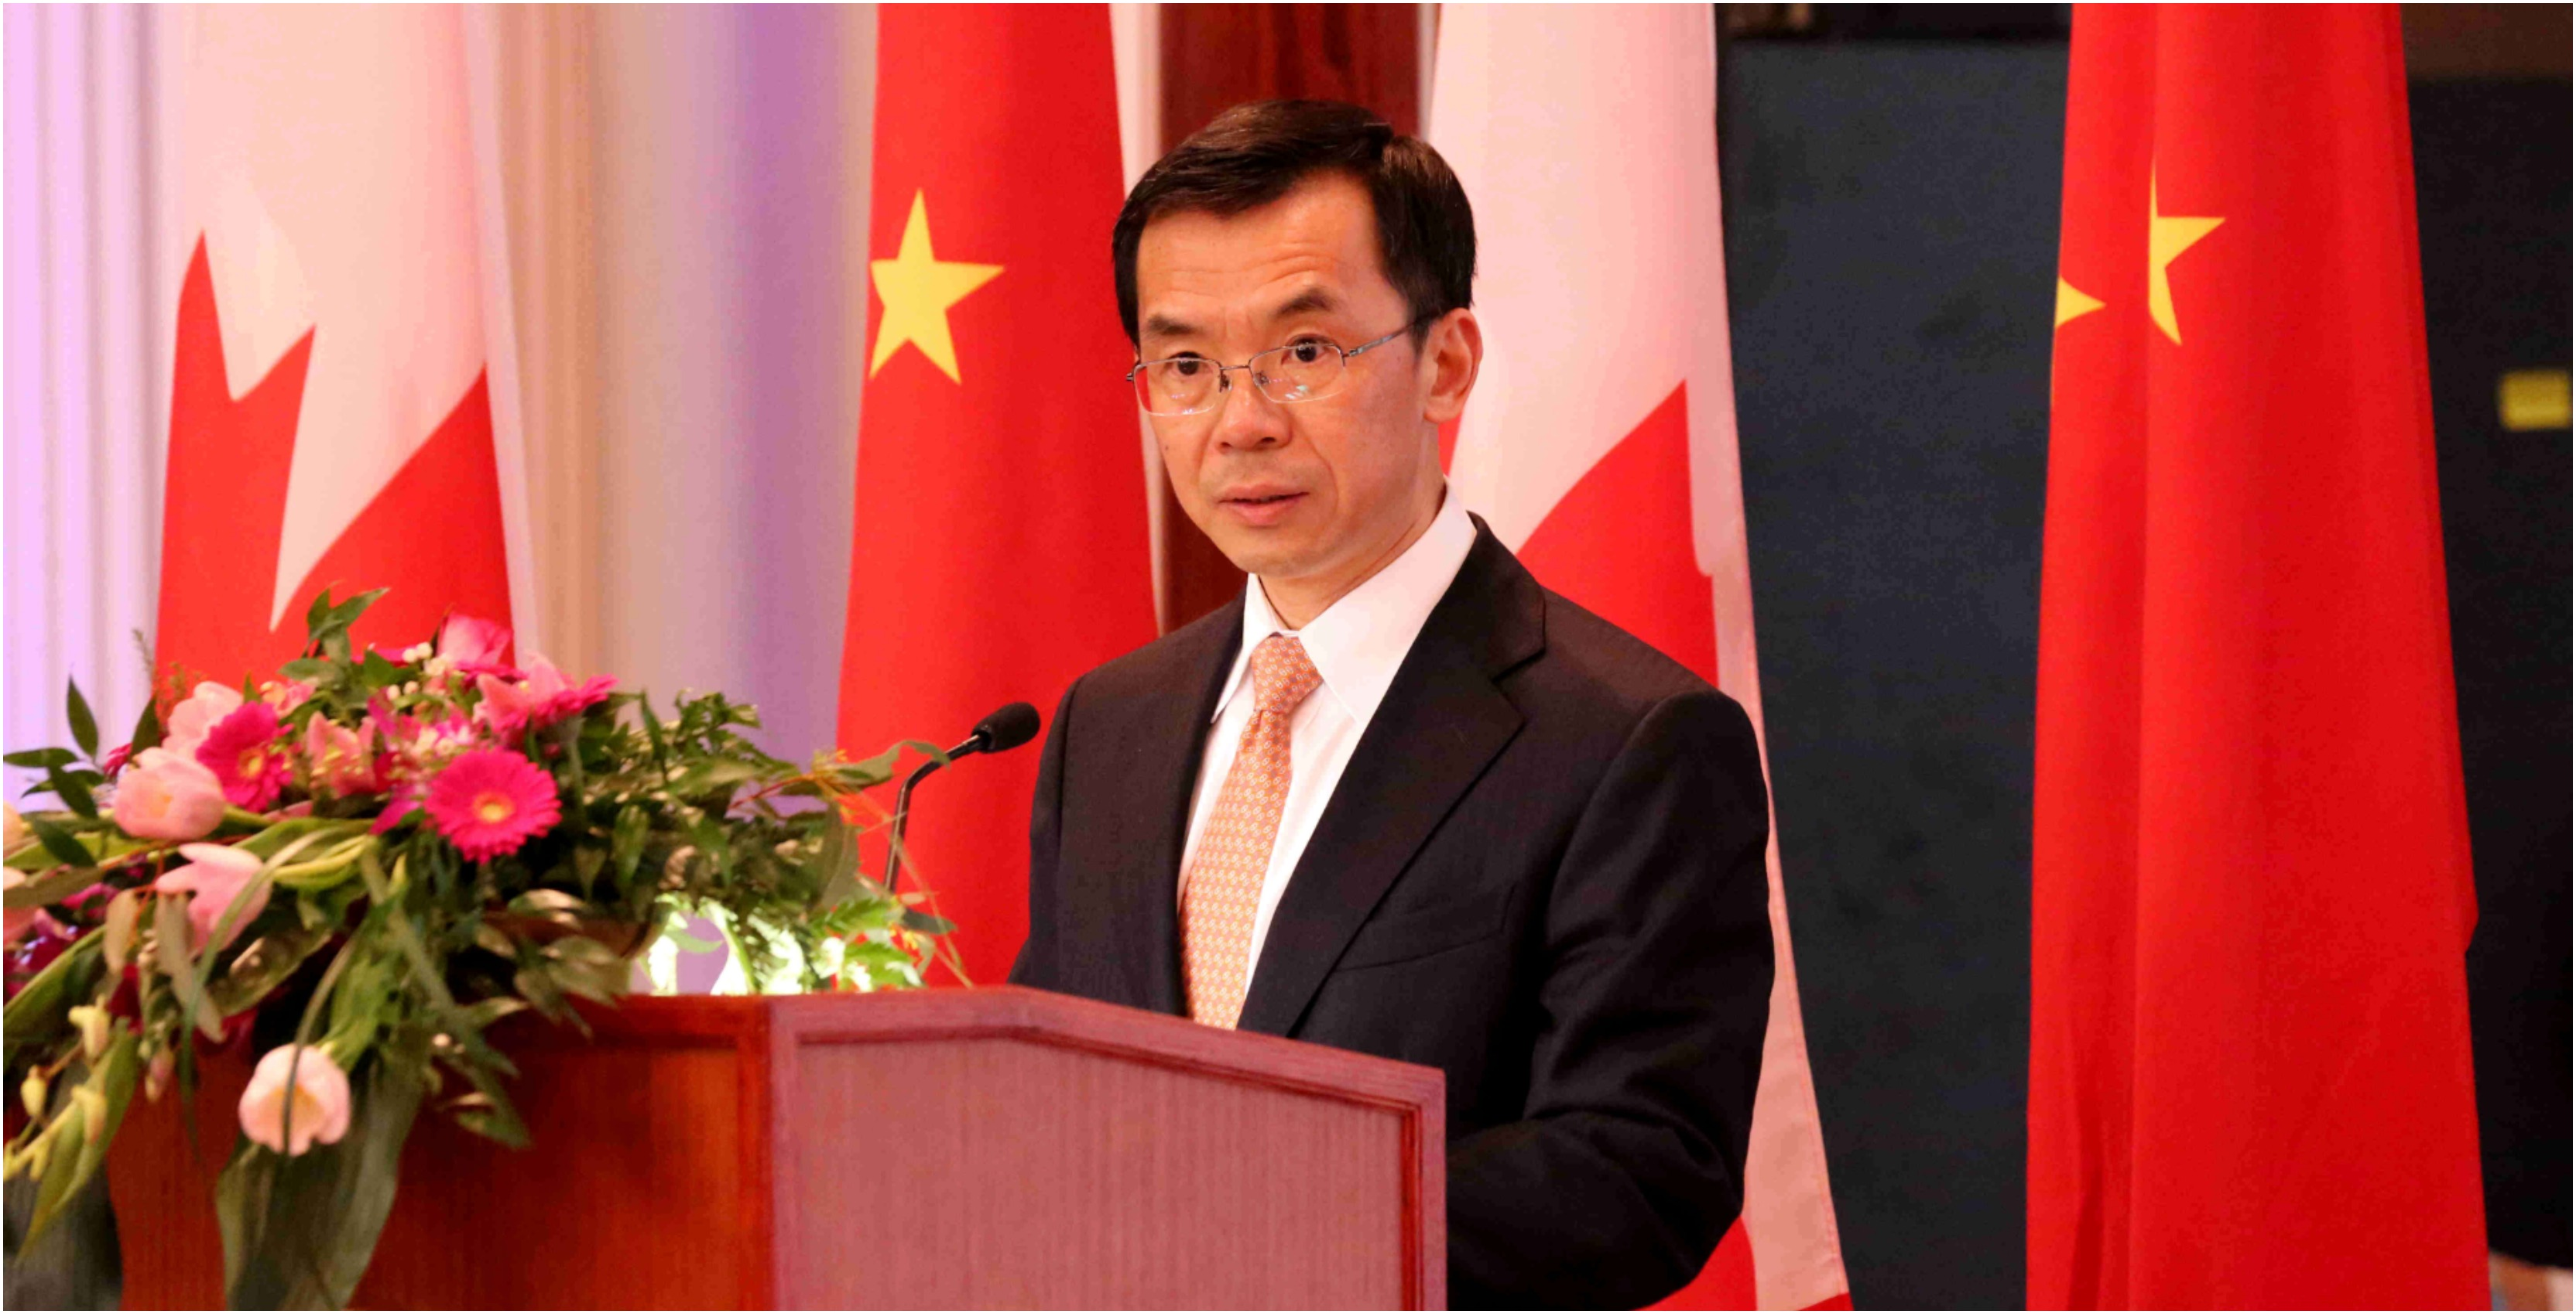 Chinese Envoy Accuses Canada of 'White Supremacy' in Huawei Arrest Case